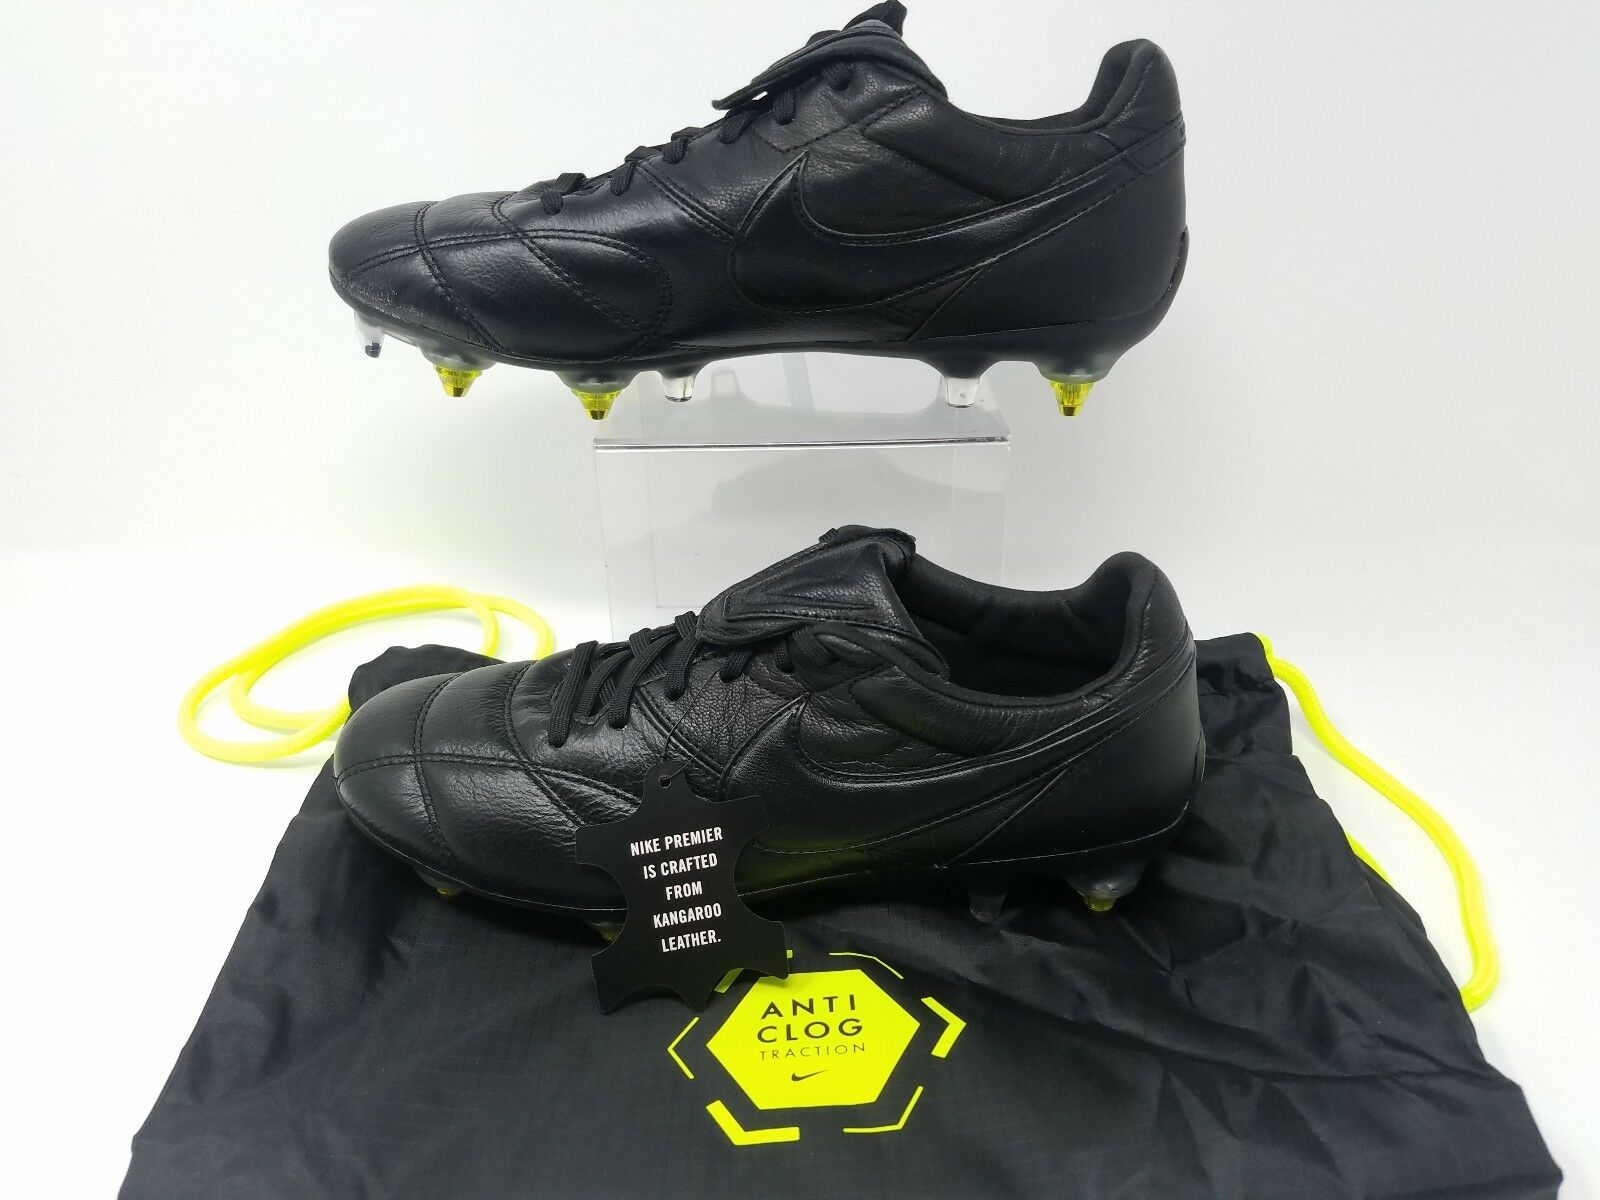 Nike Premier II SG AC Leather Leather Leather Soccer Cleats Sizes 7 Triple Black 921397-003 fb6923